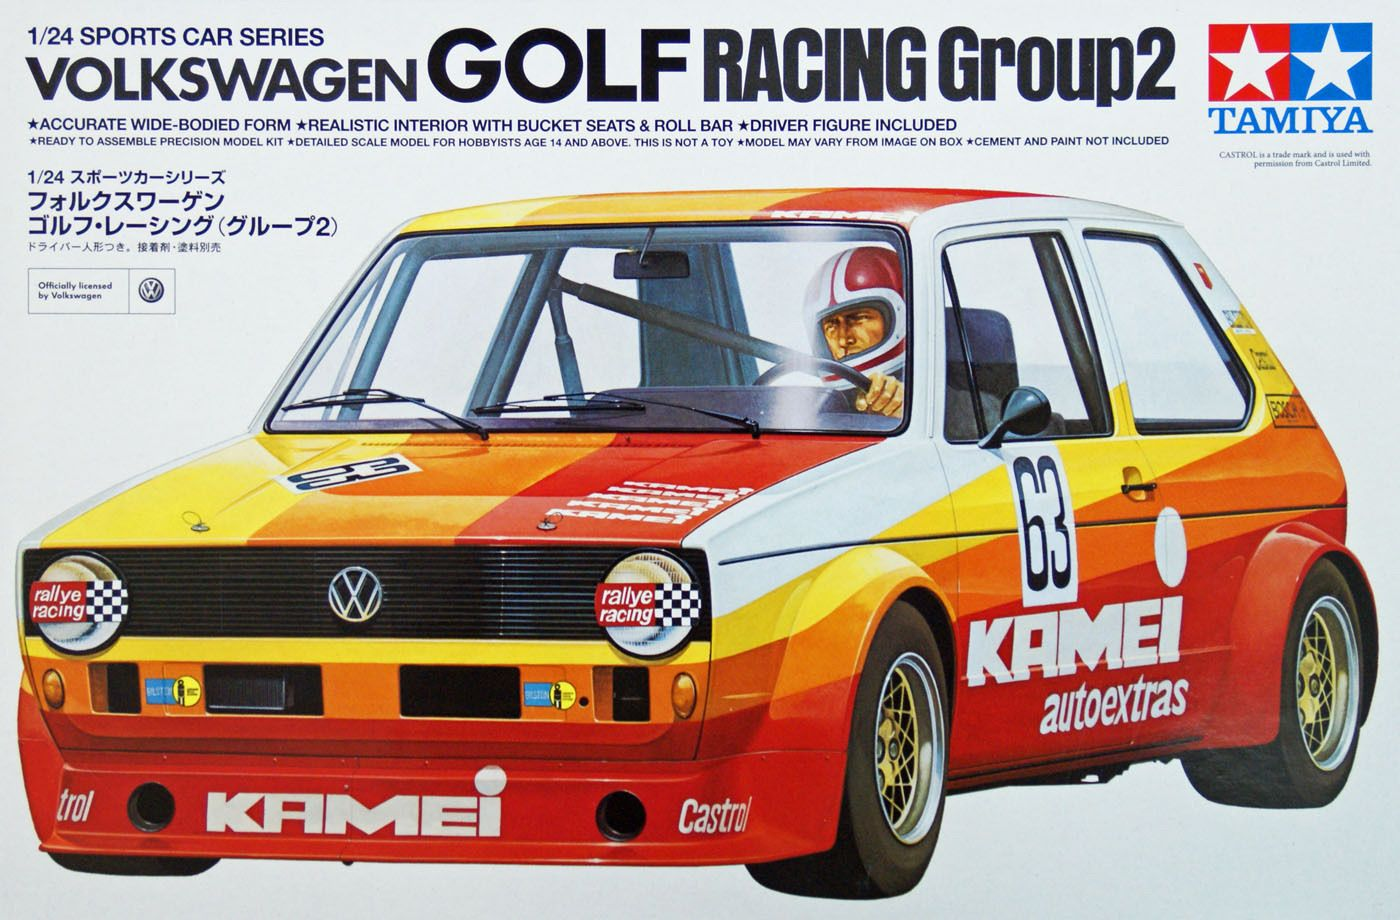 tamiya 24008 1 24 sport car series vw volkswagen golf mk1 rabbit gti group 2 rally racing. Black Bedroom Furniture Sets. Home Design Ideas